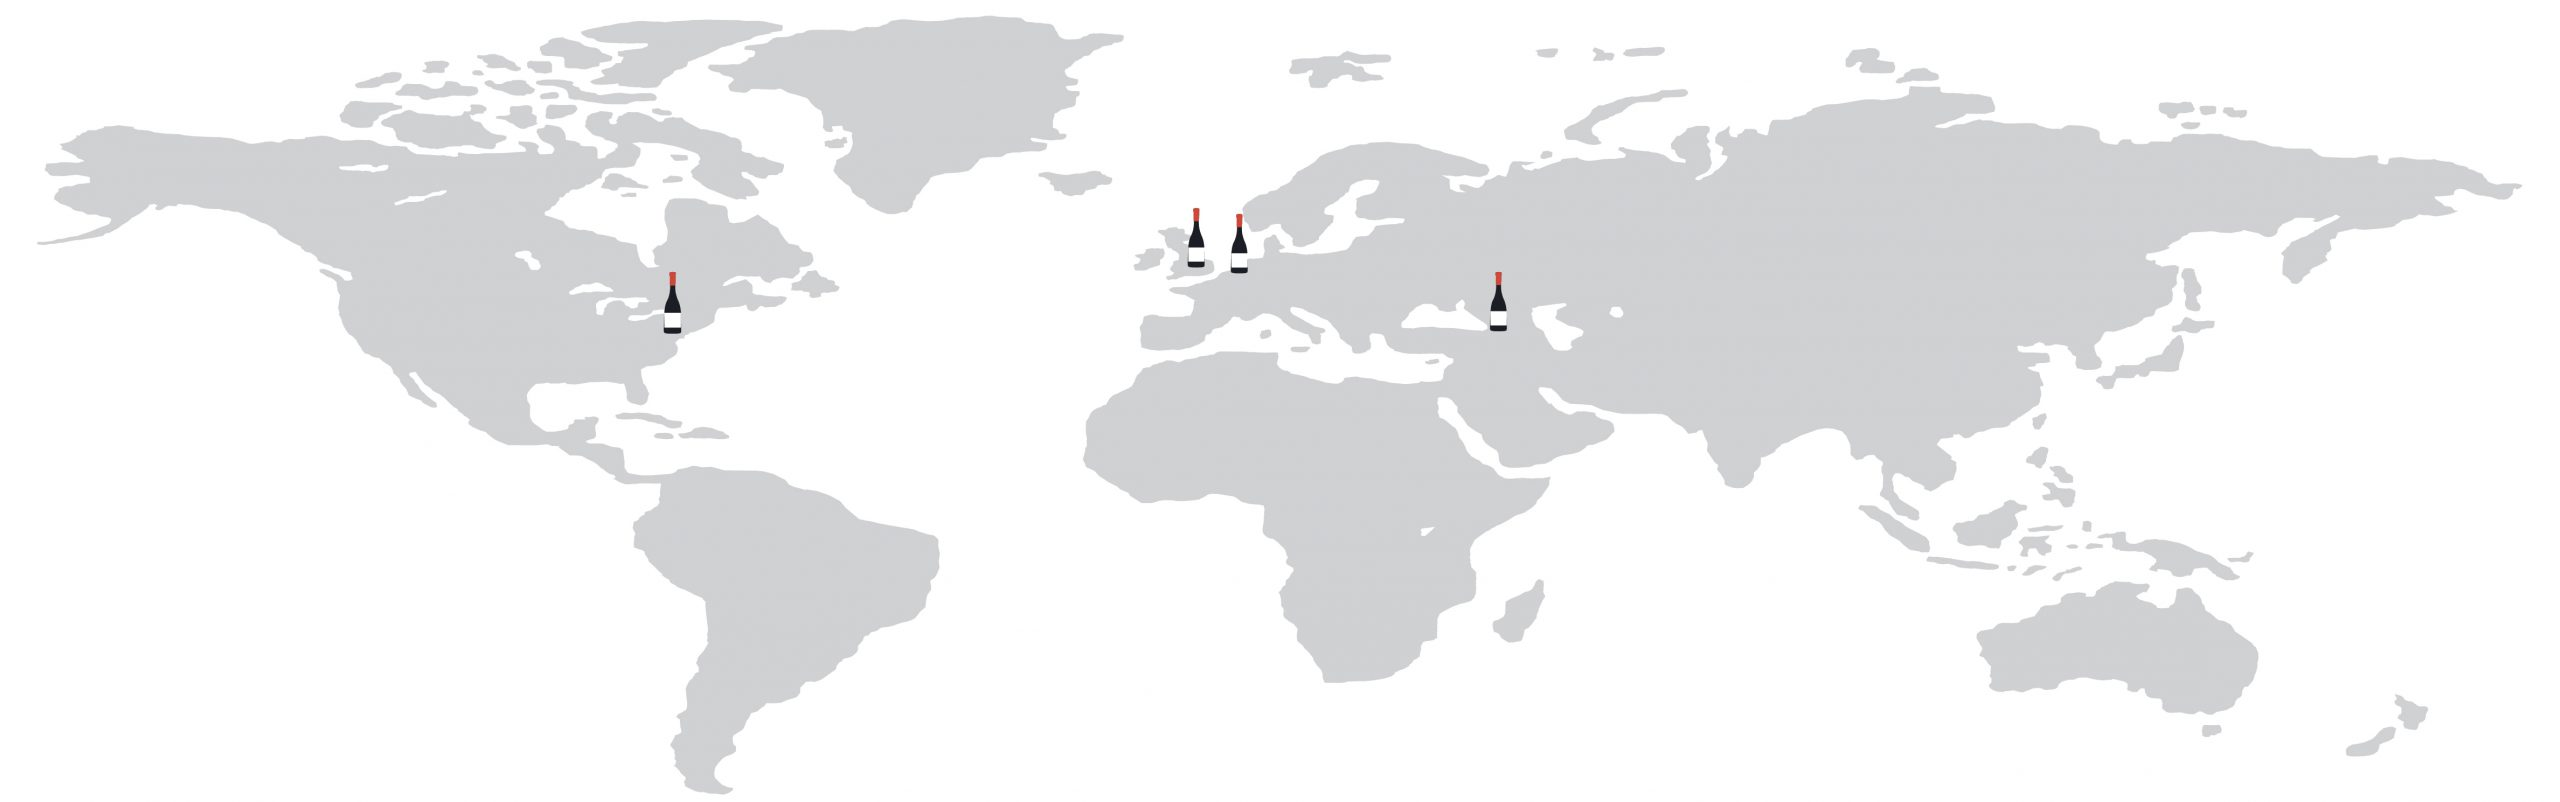 trade channel map